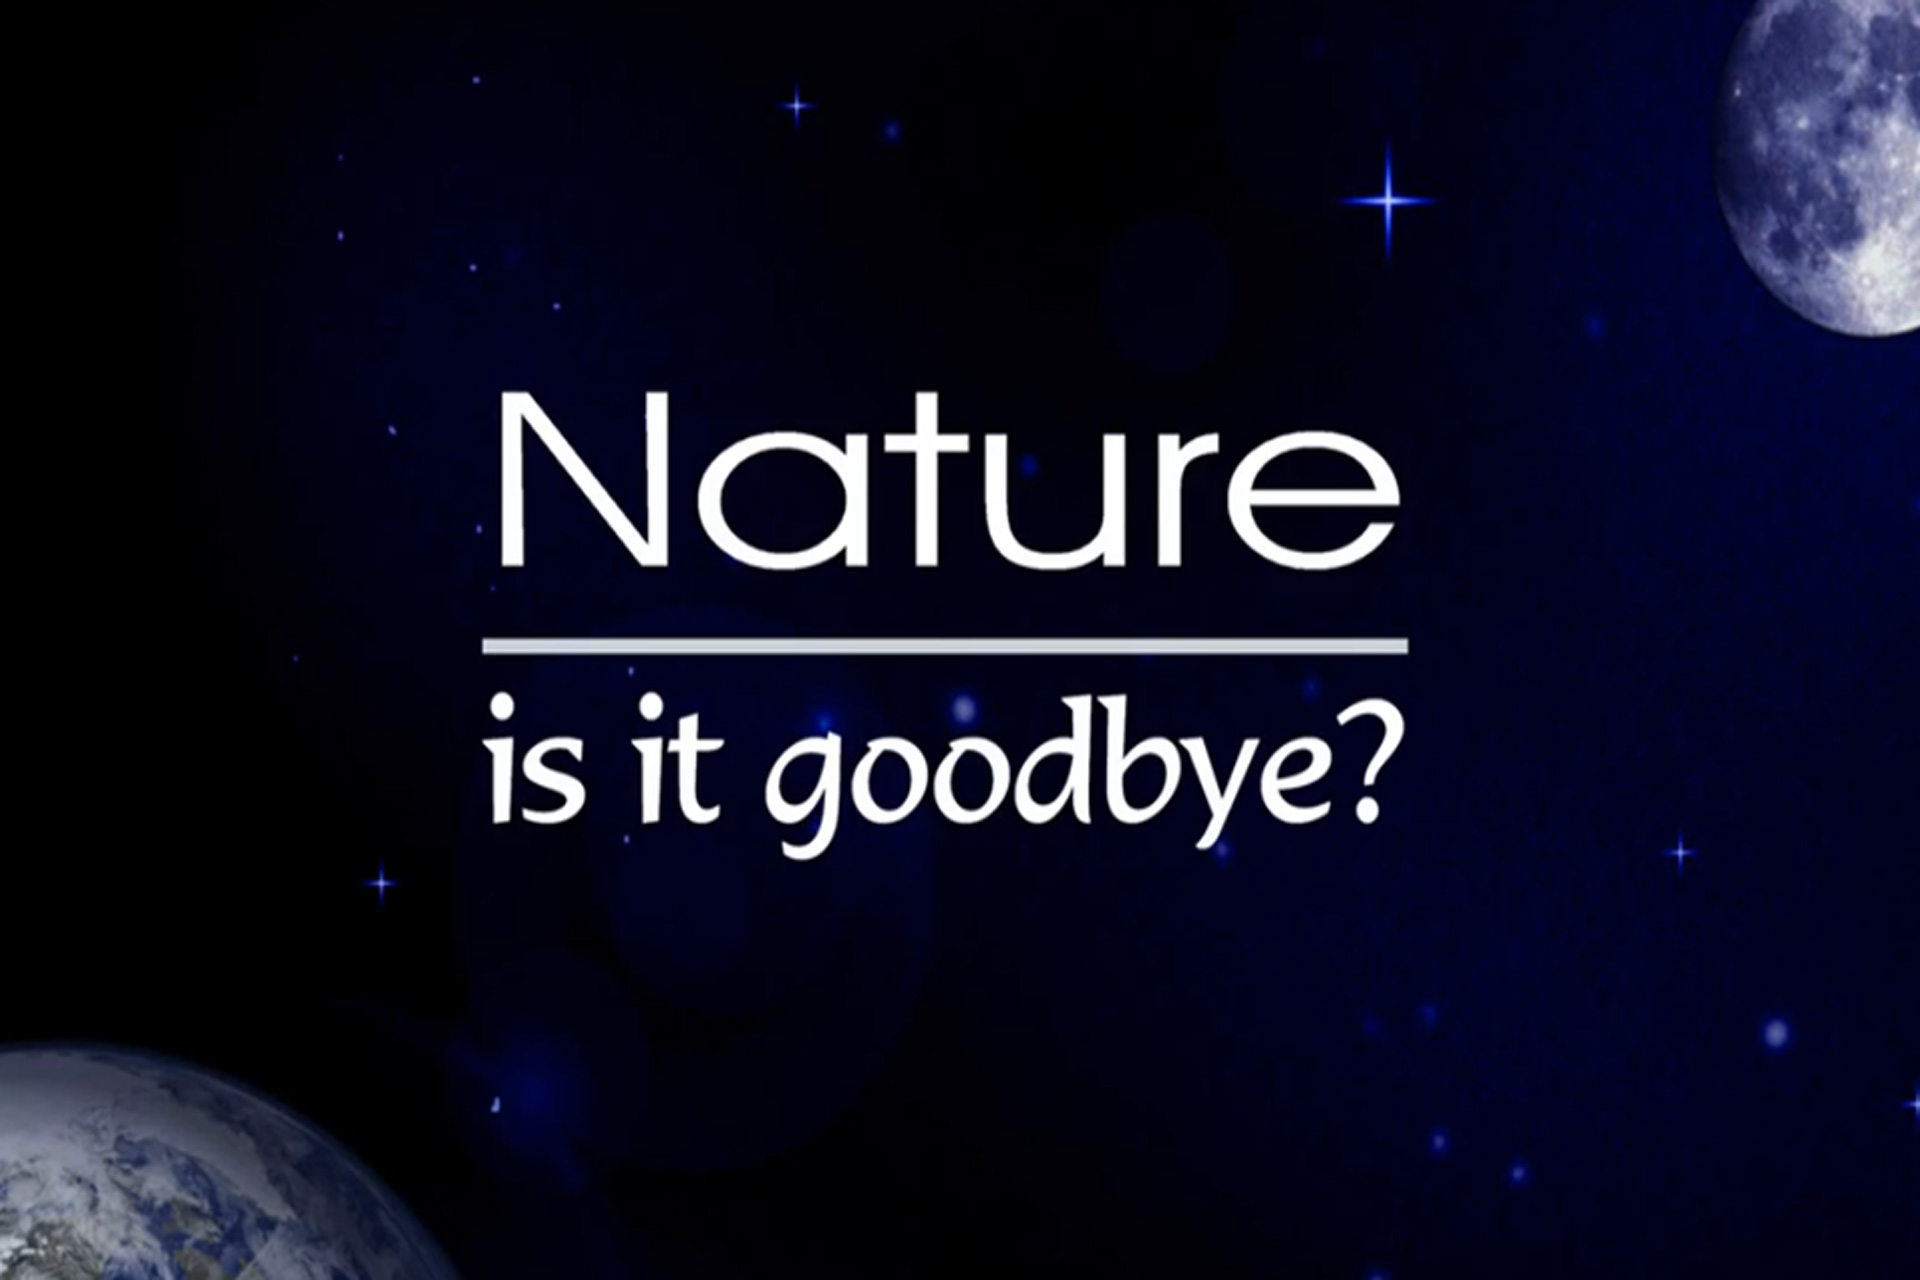 Nature, is it goodbye?